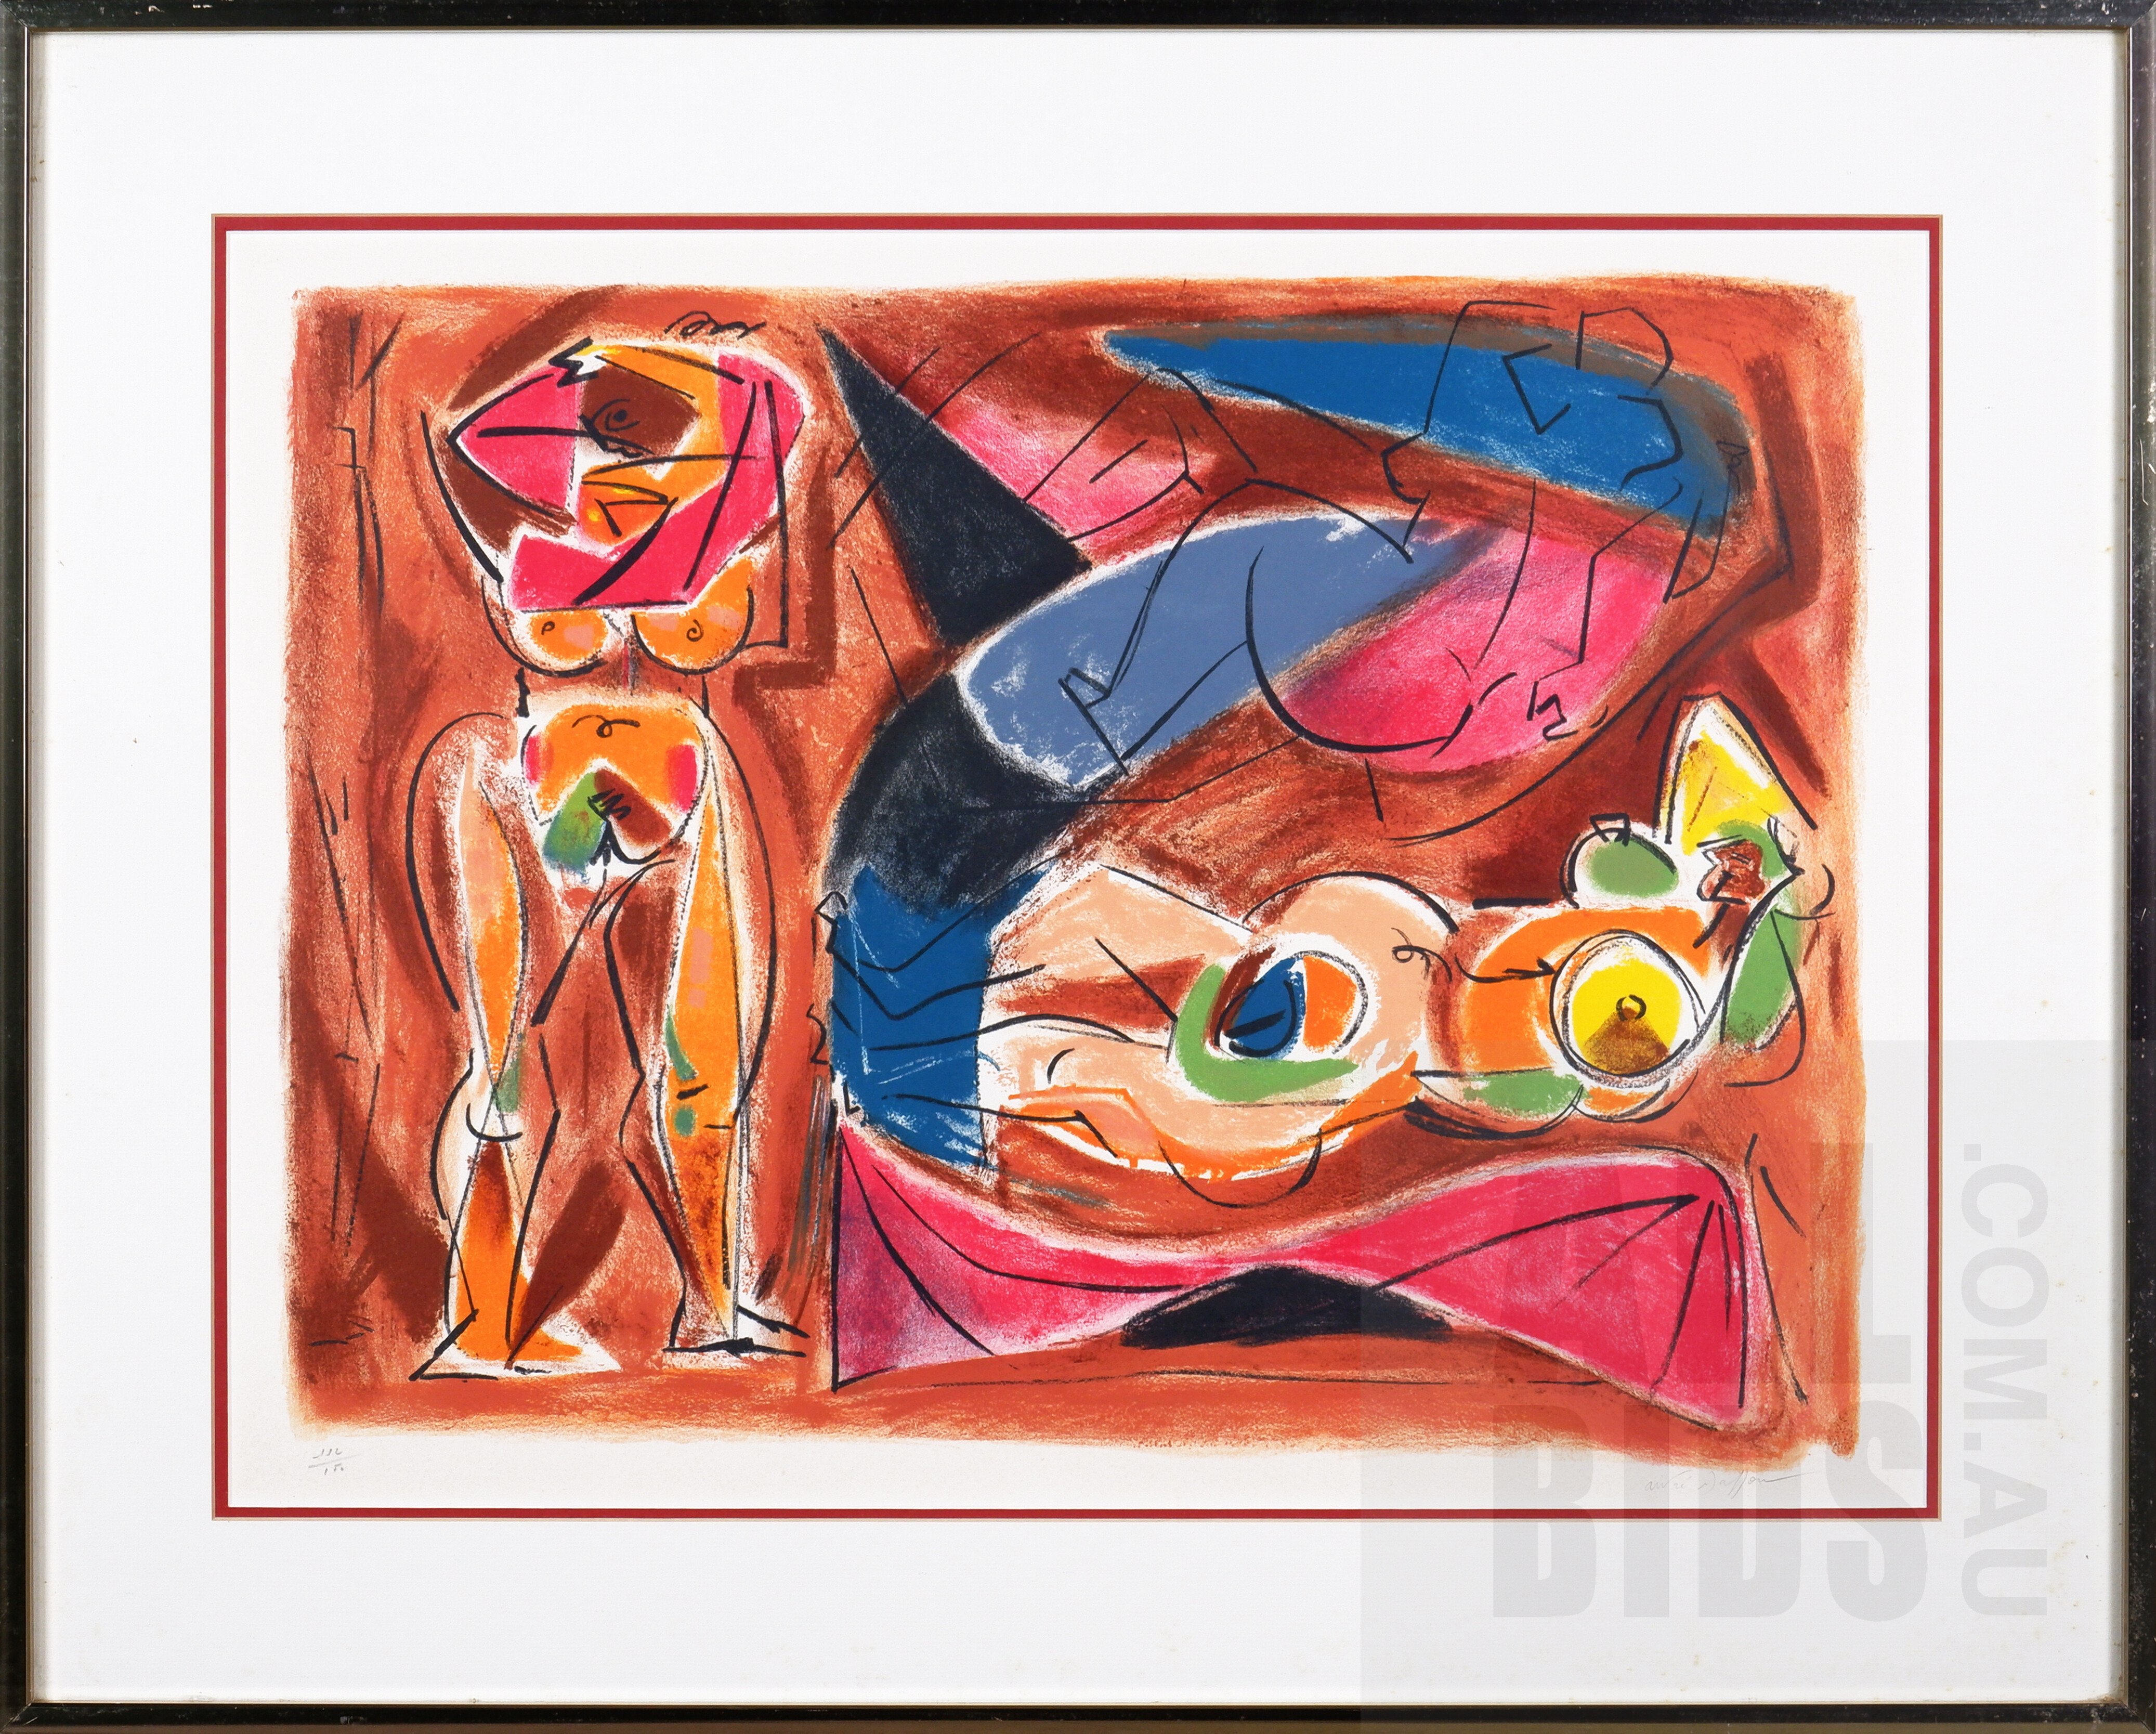 'Andre Masson (20th Century), Untitled, Lithograph, 40 x 55 cm (image size)'